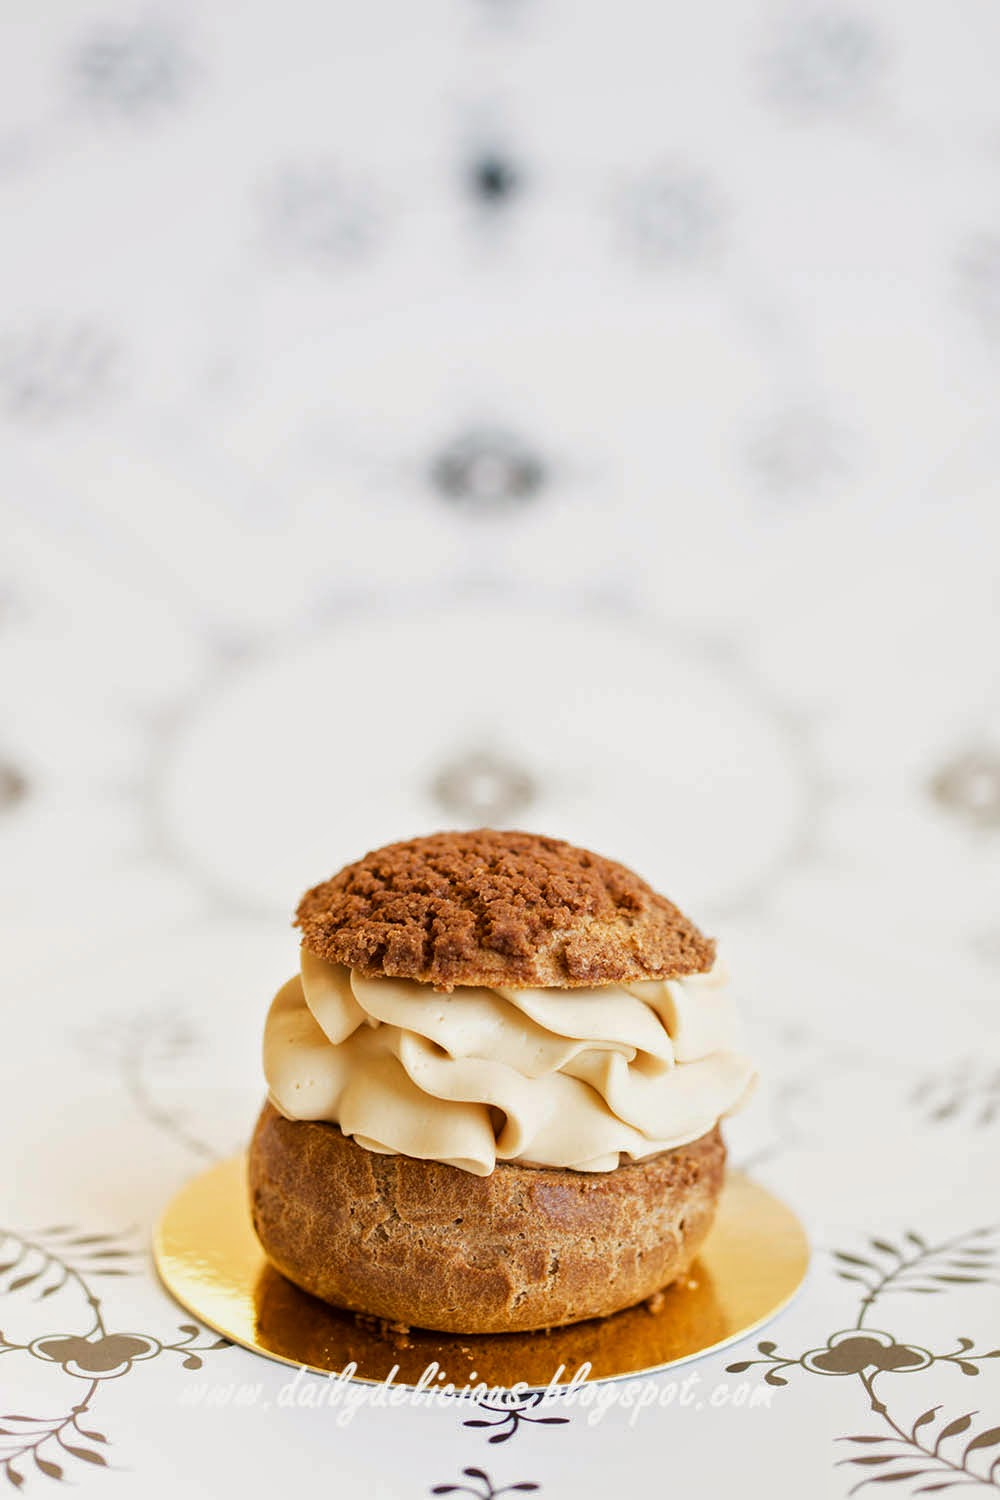 ... Chocolate choux pastry with chocolate pastry cream and caramel whipped